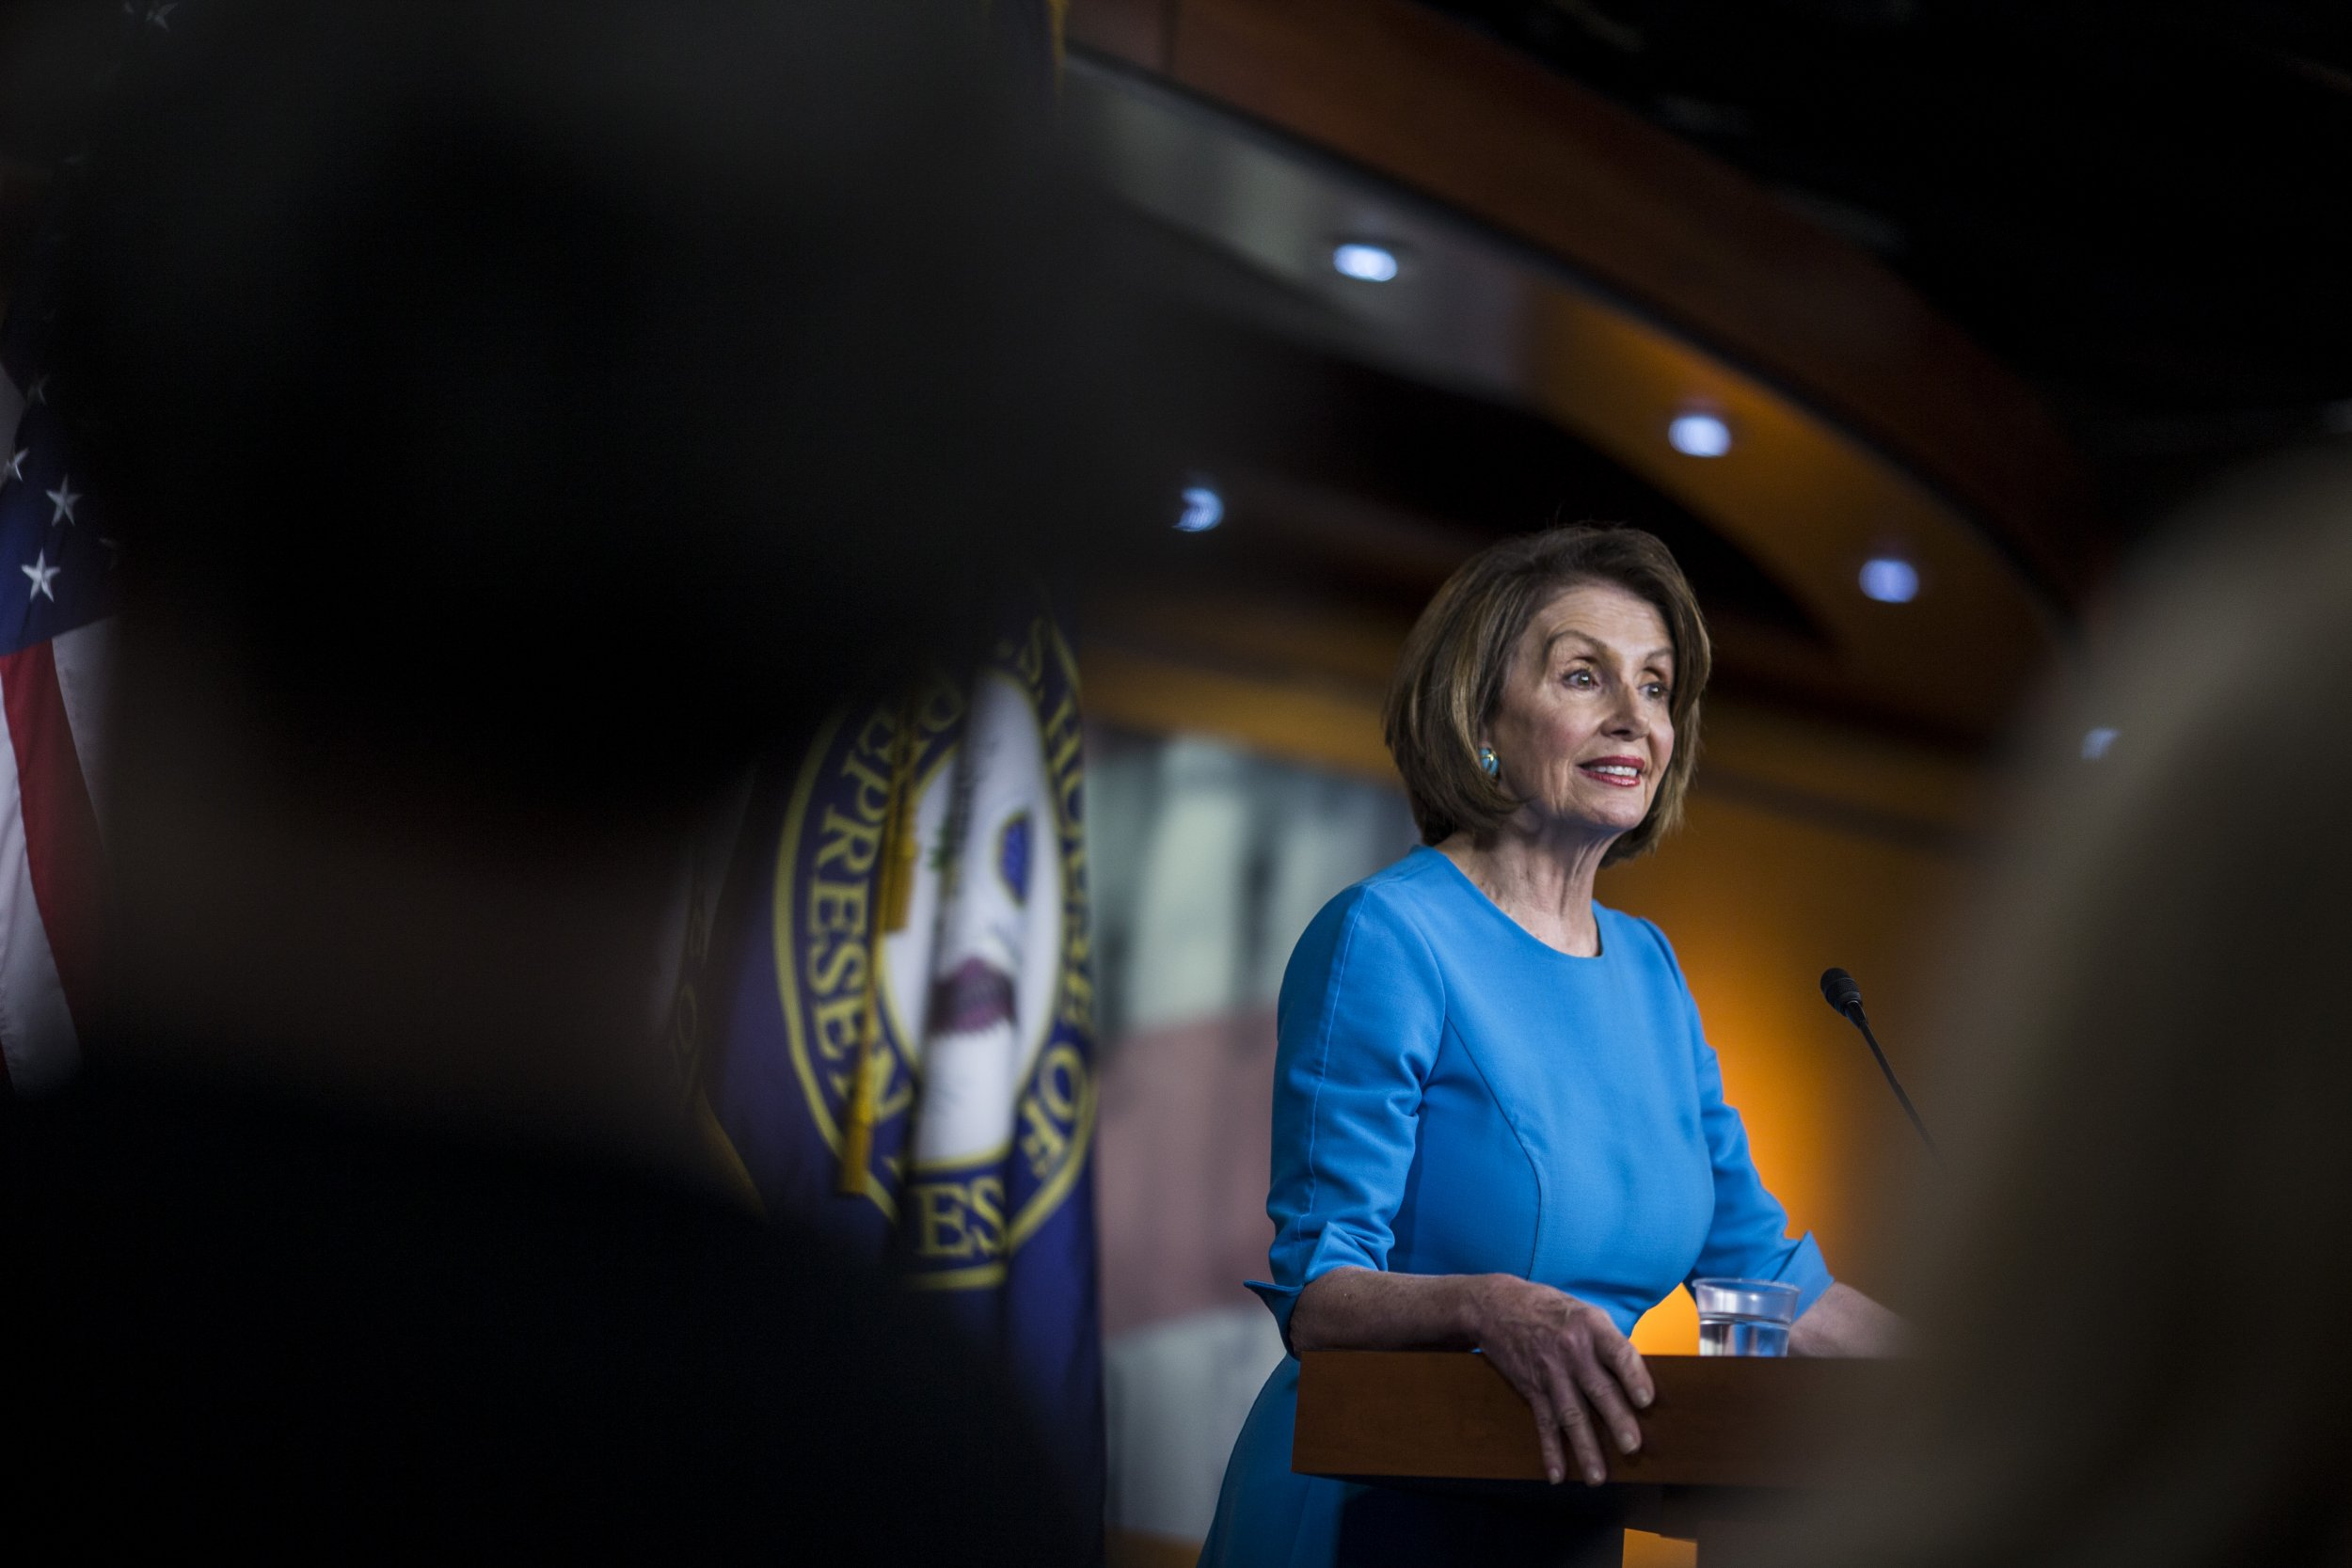 democrats want impeachment but wont cross nancy pelosi